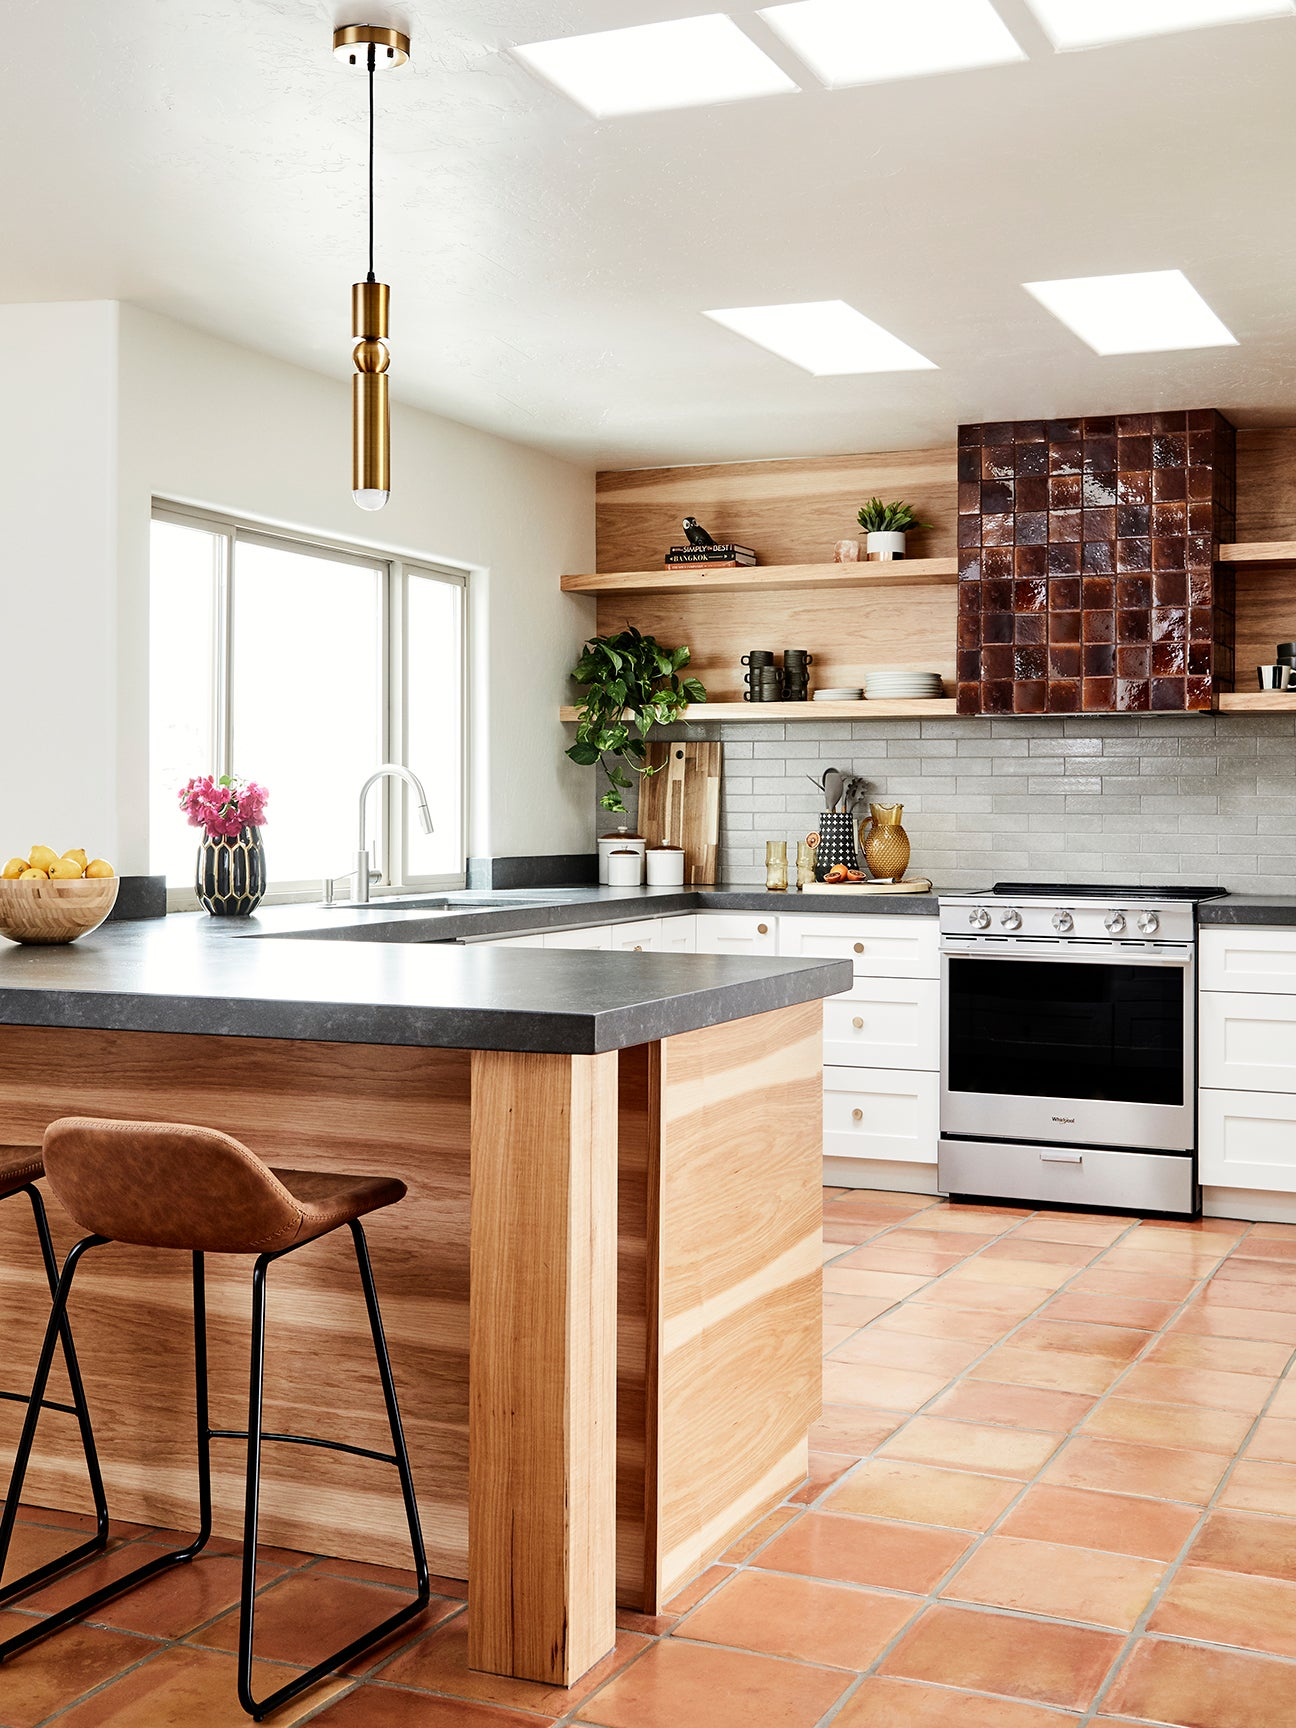 wood kitchen with a brown tiled range hood